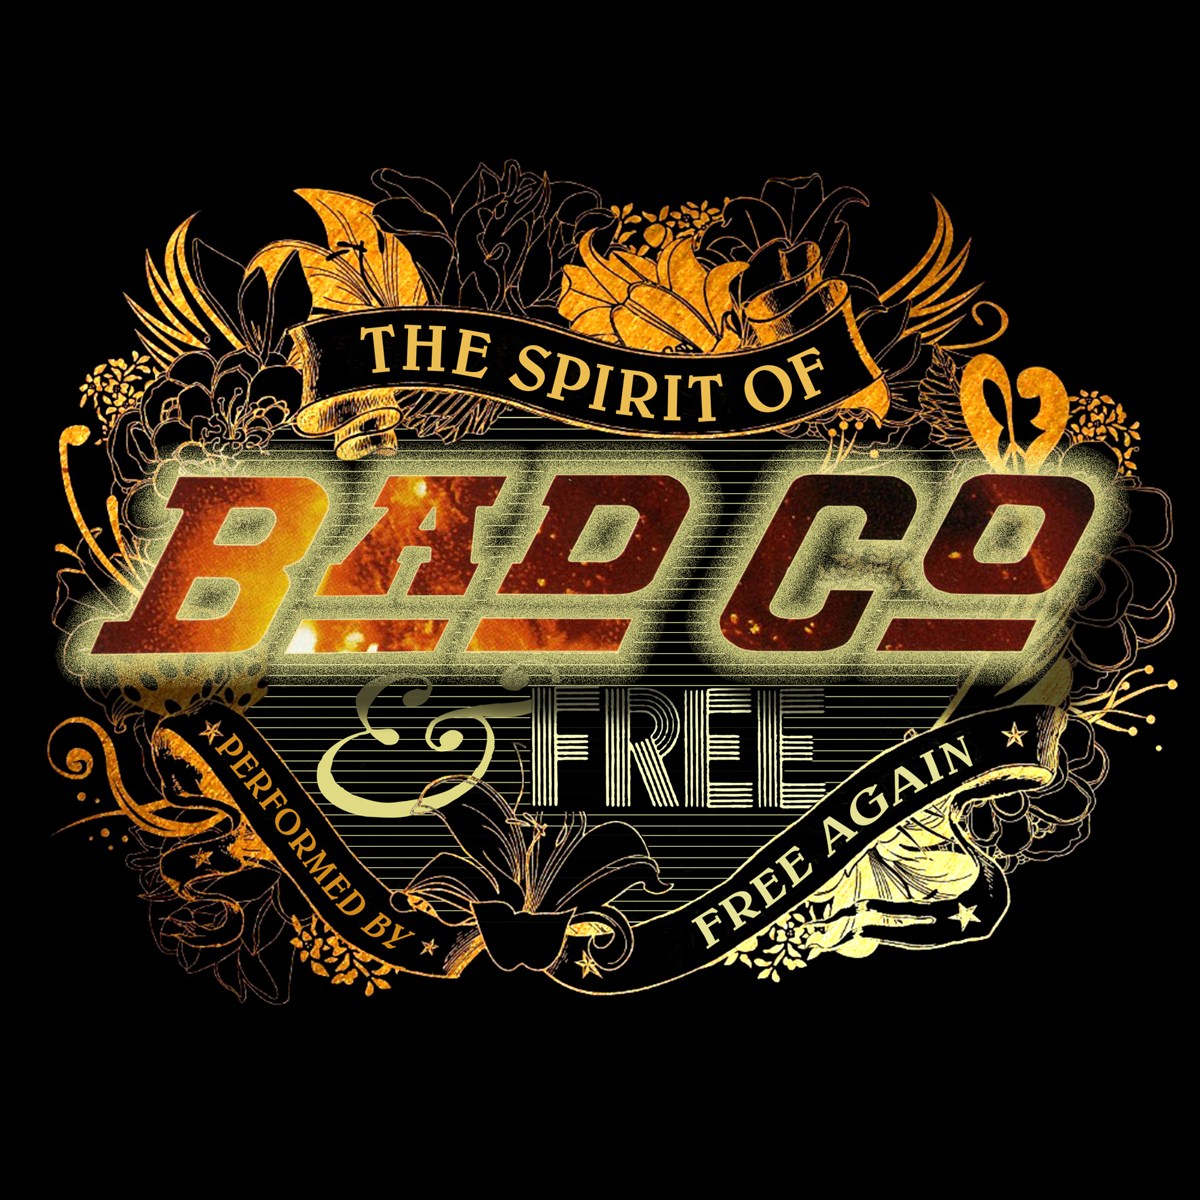 The Spirit of Bad Company & Free